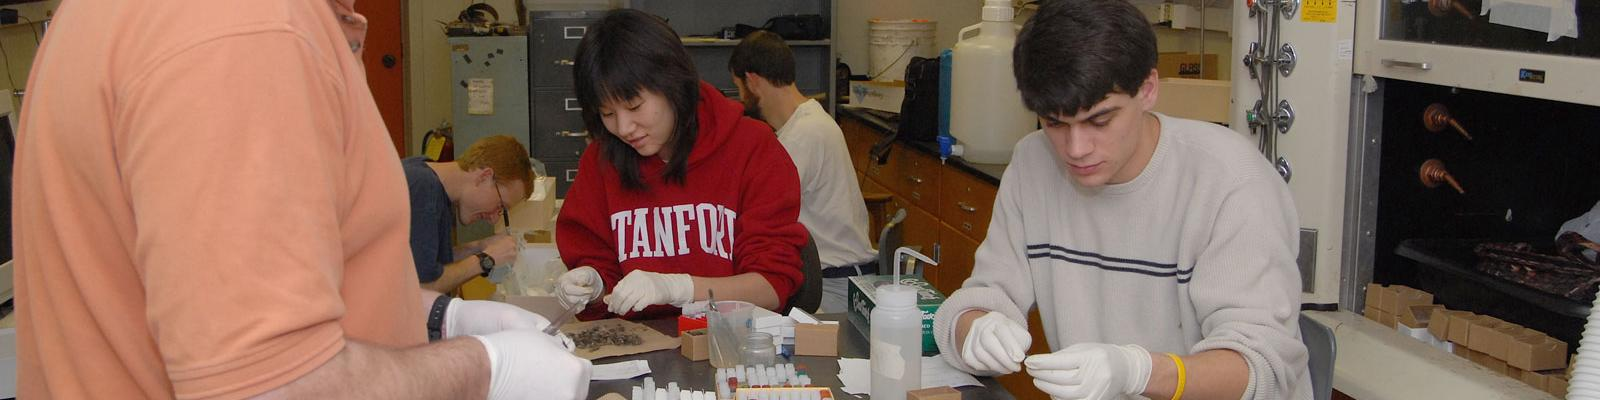 Students in the bio lab preparing specimens